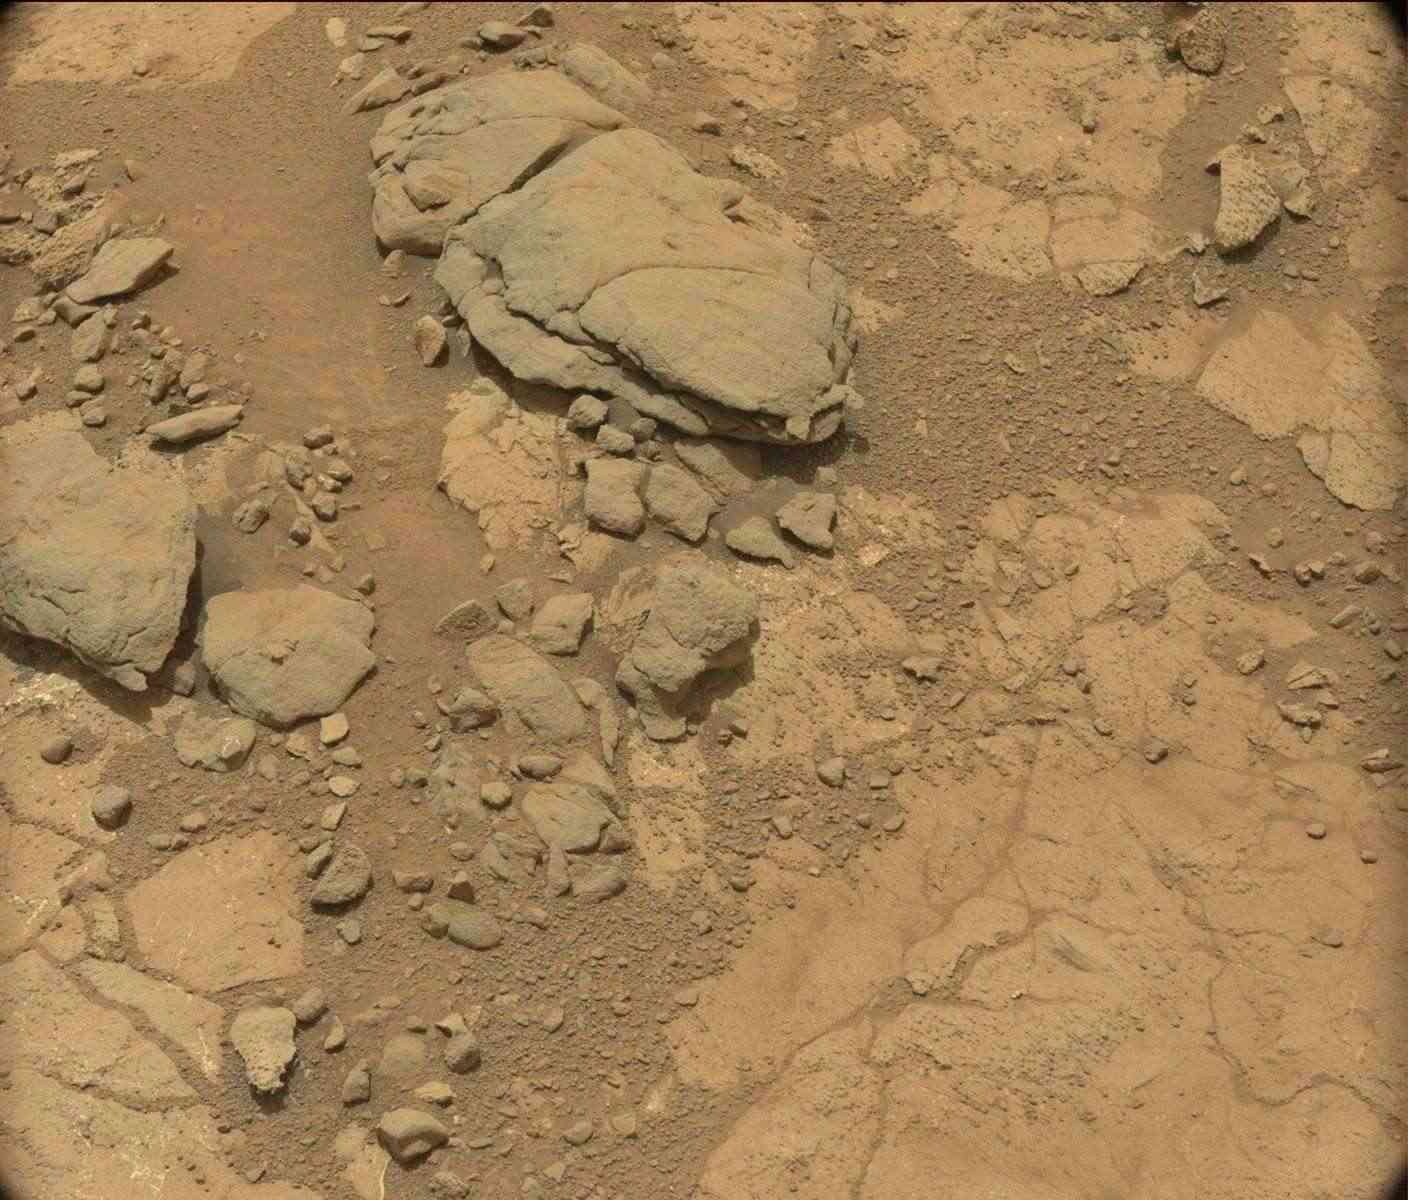 Curiosity Sol 283 Anomaly 0283ml11